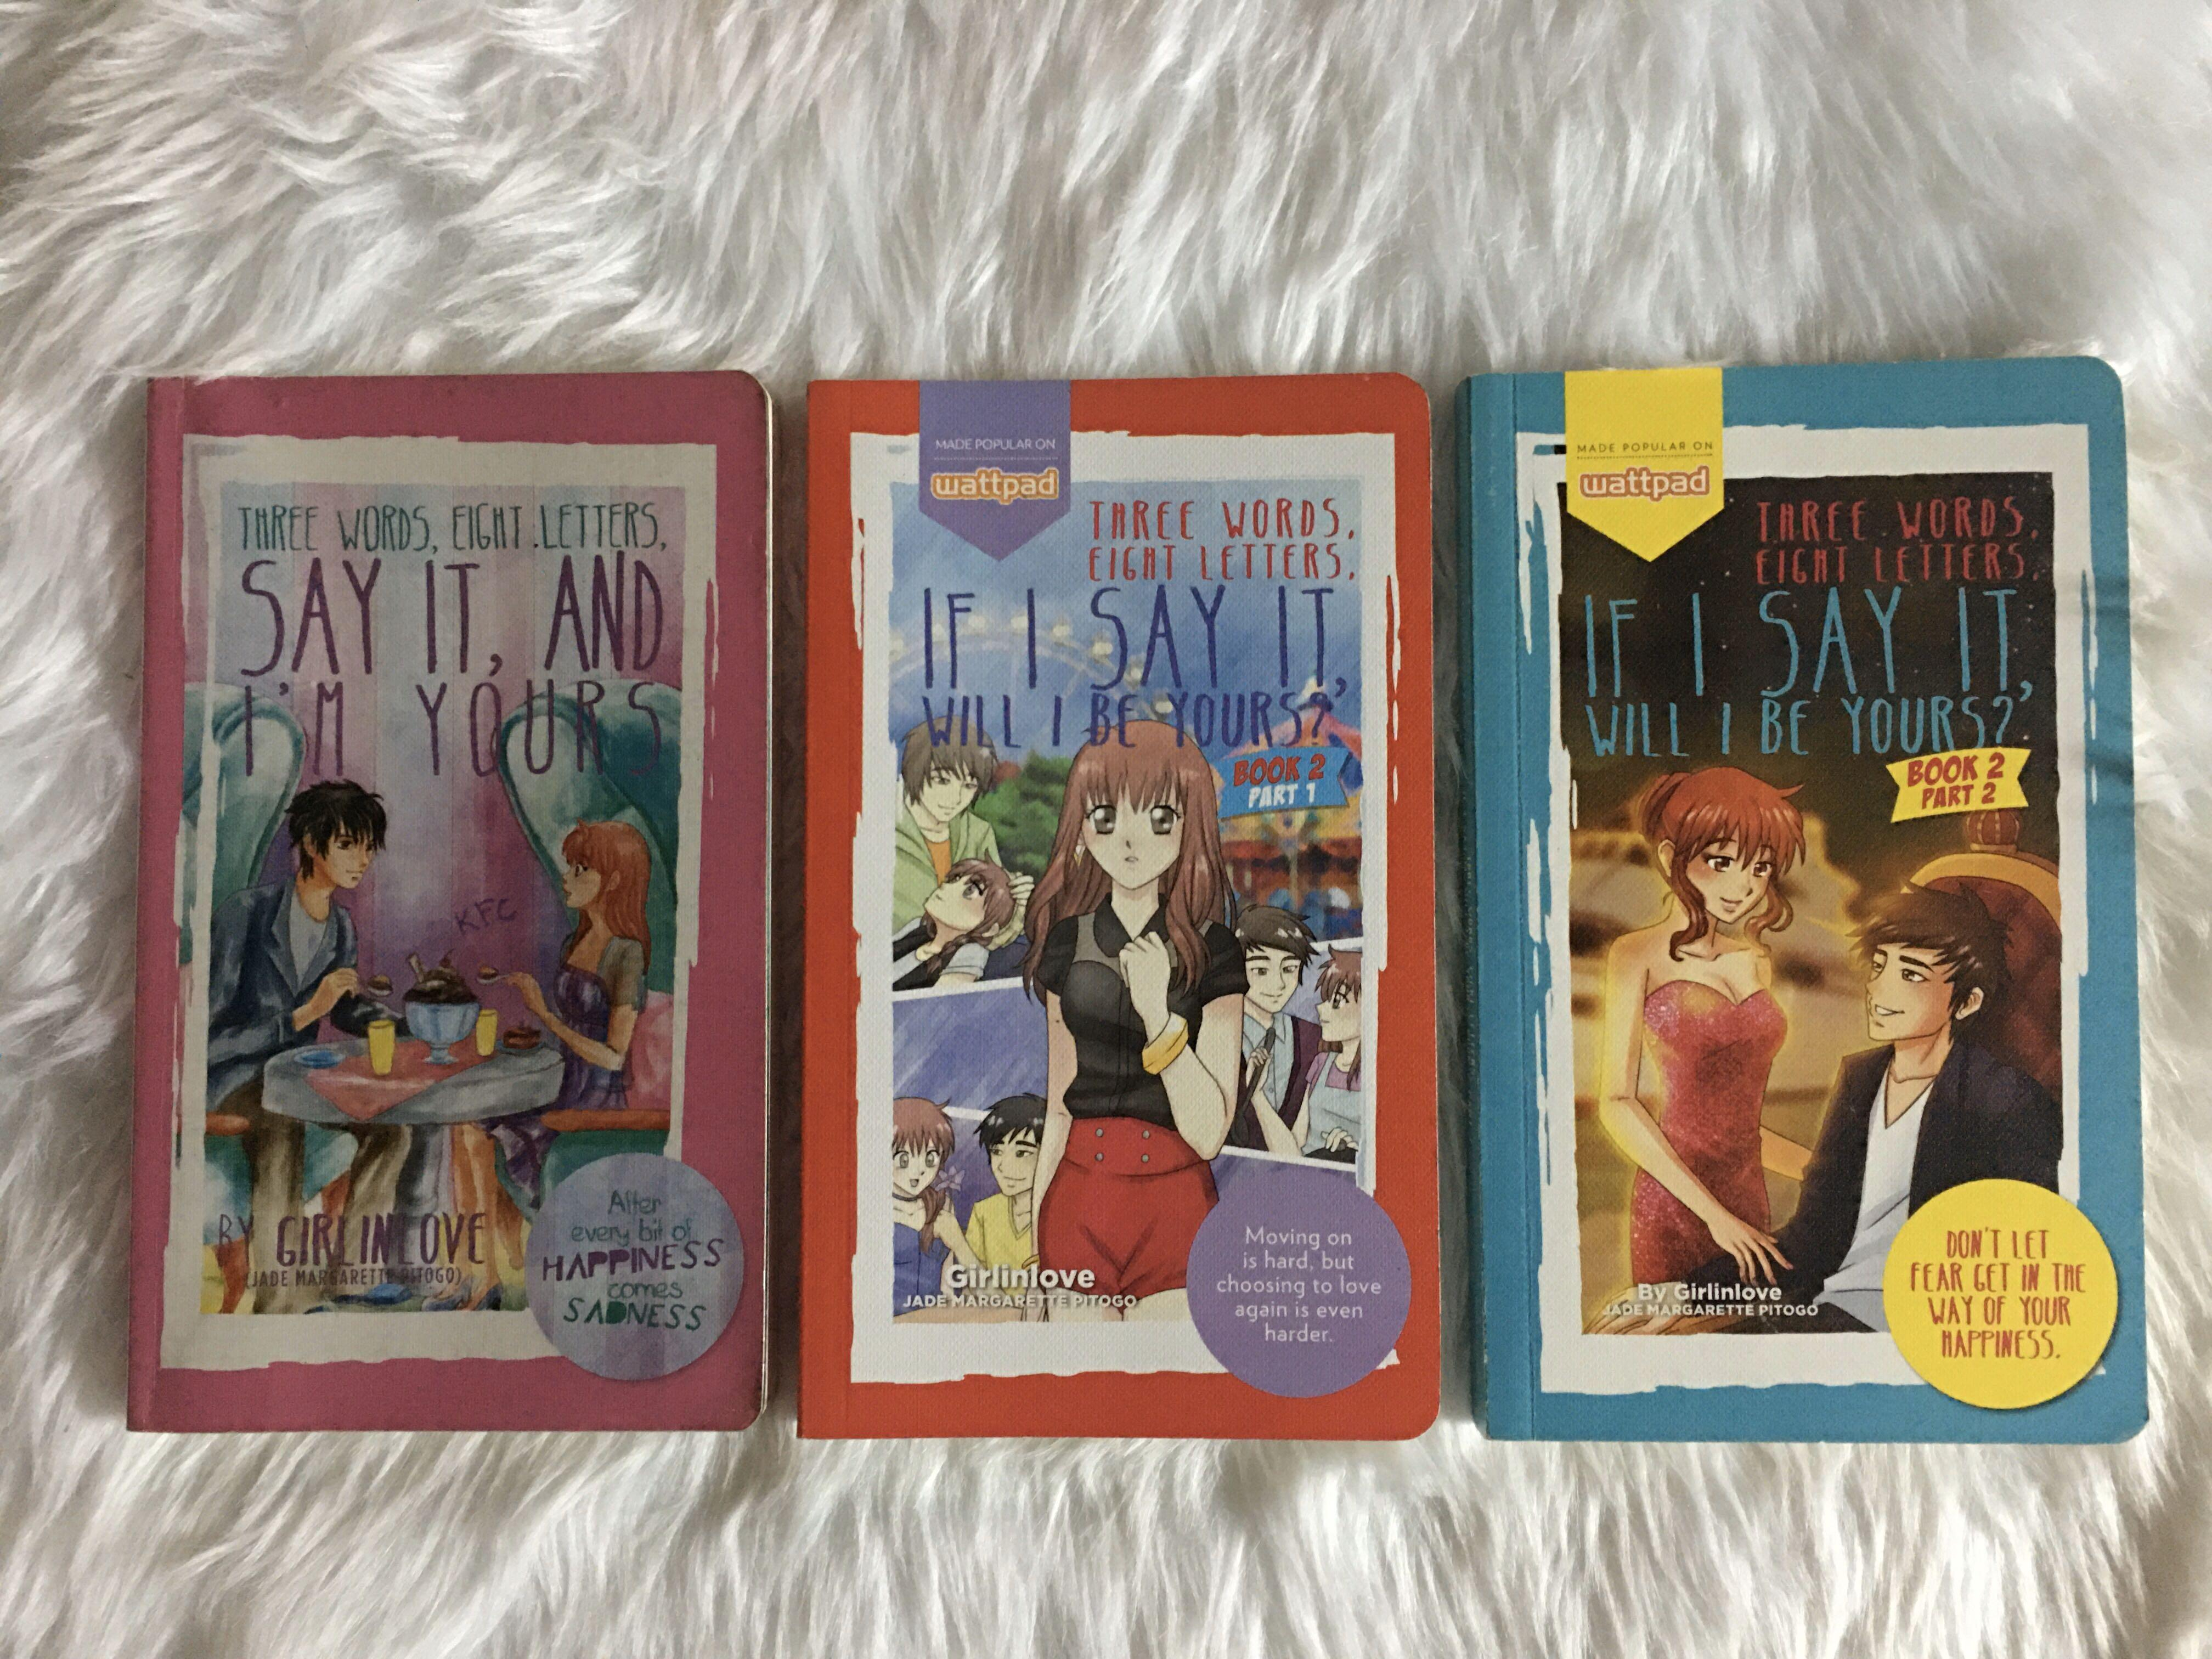 WATTPAD BOOKS BUNDLE B: (3W8L) Three Words, Eight Letters, Say It, And I'm Yours Book 1 and Book 2 (Part 1 & 2)